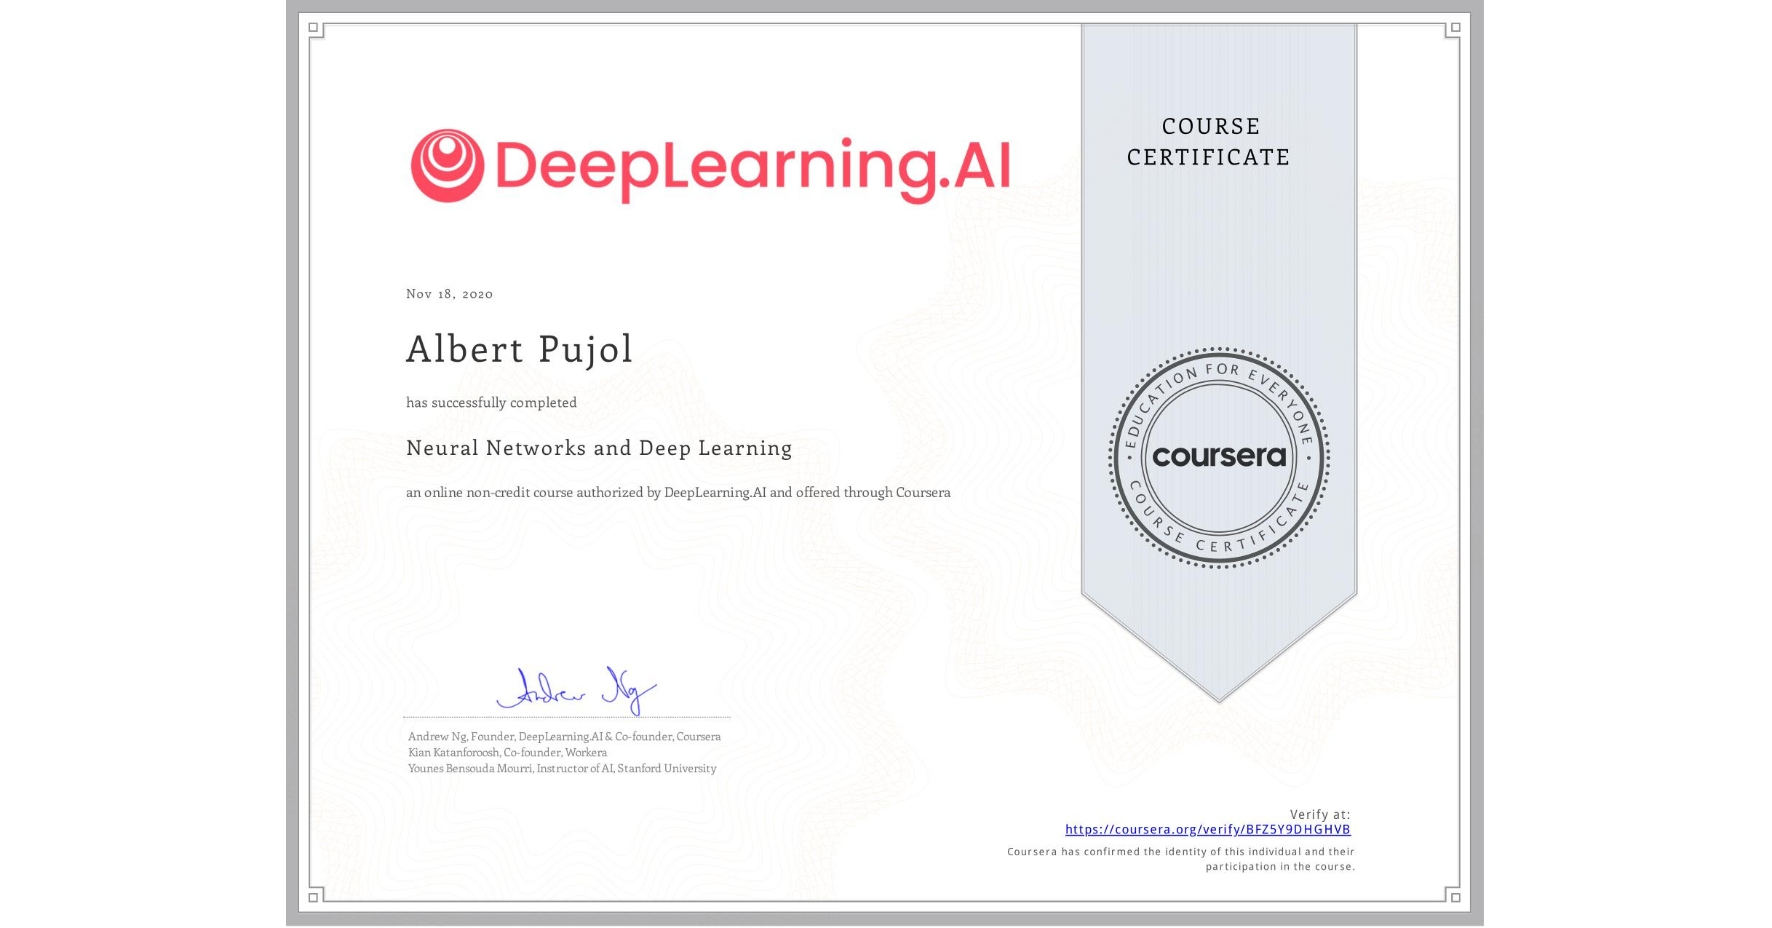 View certificate for Albert Pujol, Neural Networks and Deep Learning, an online non-credit course authorized by DeepLearning.AI and offered through Coursera